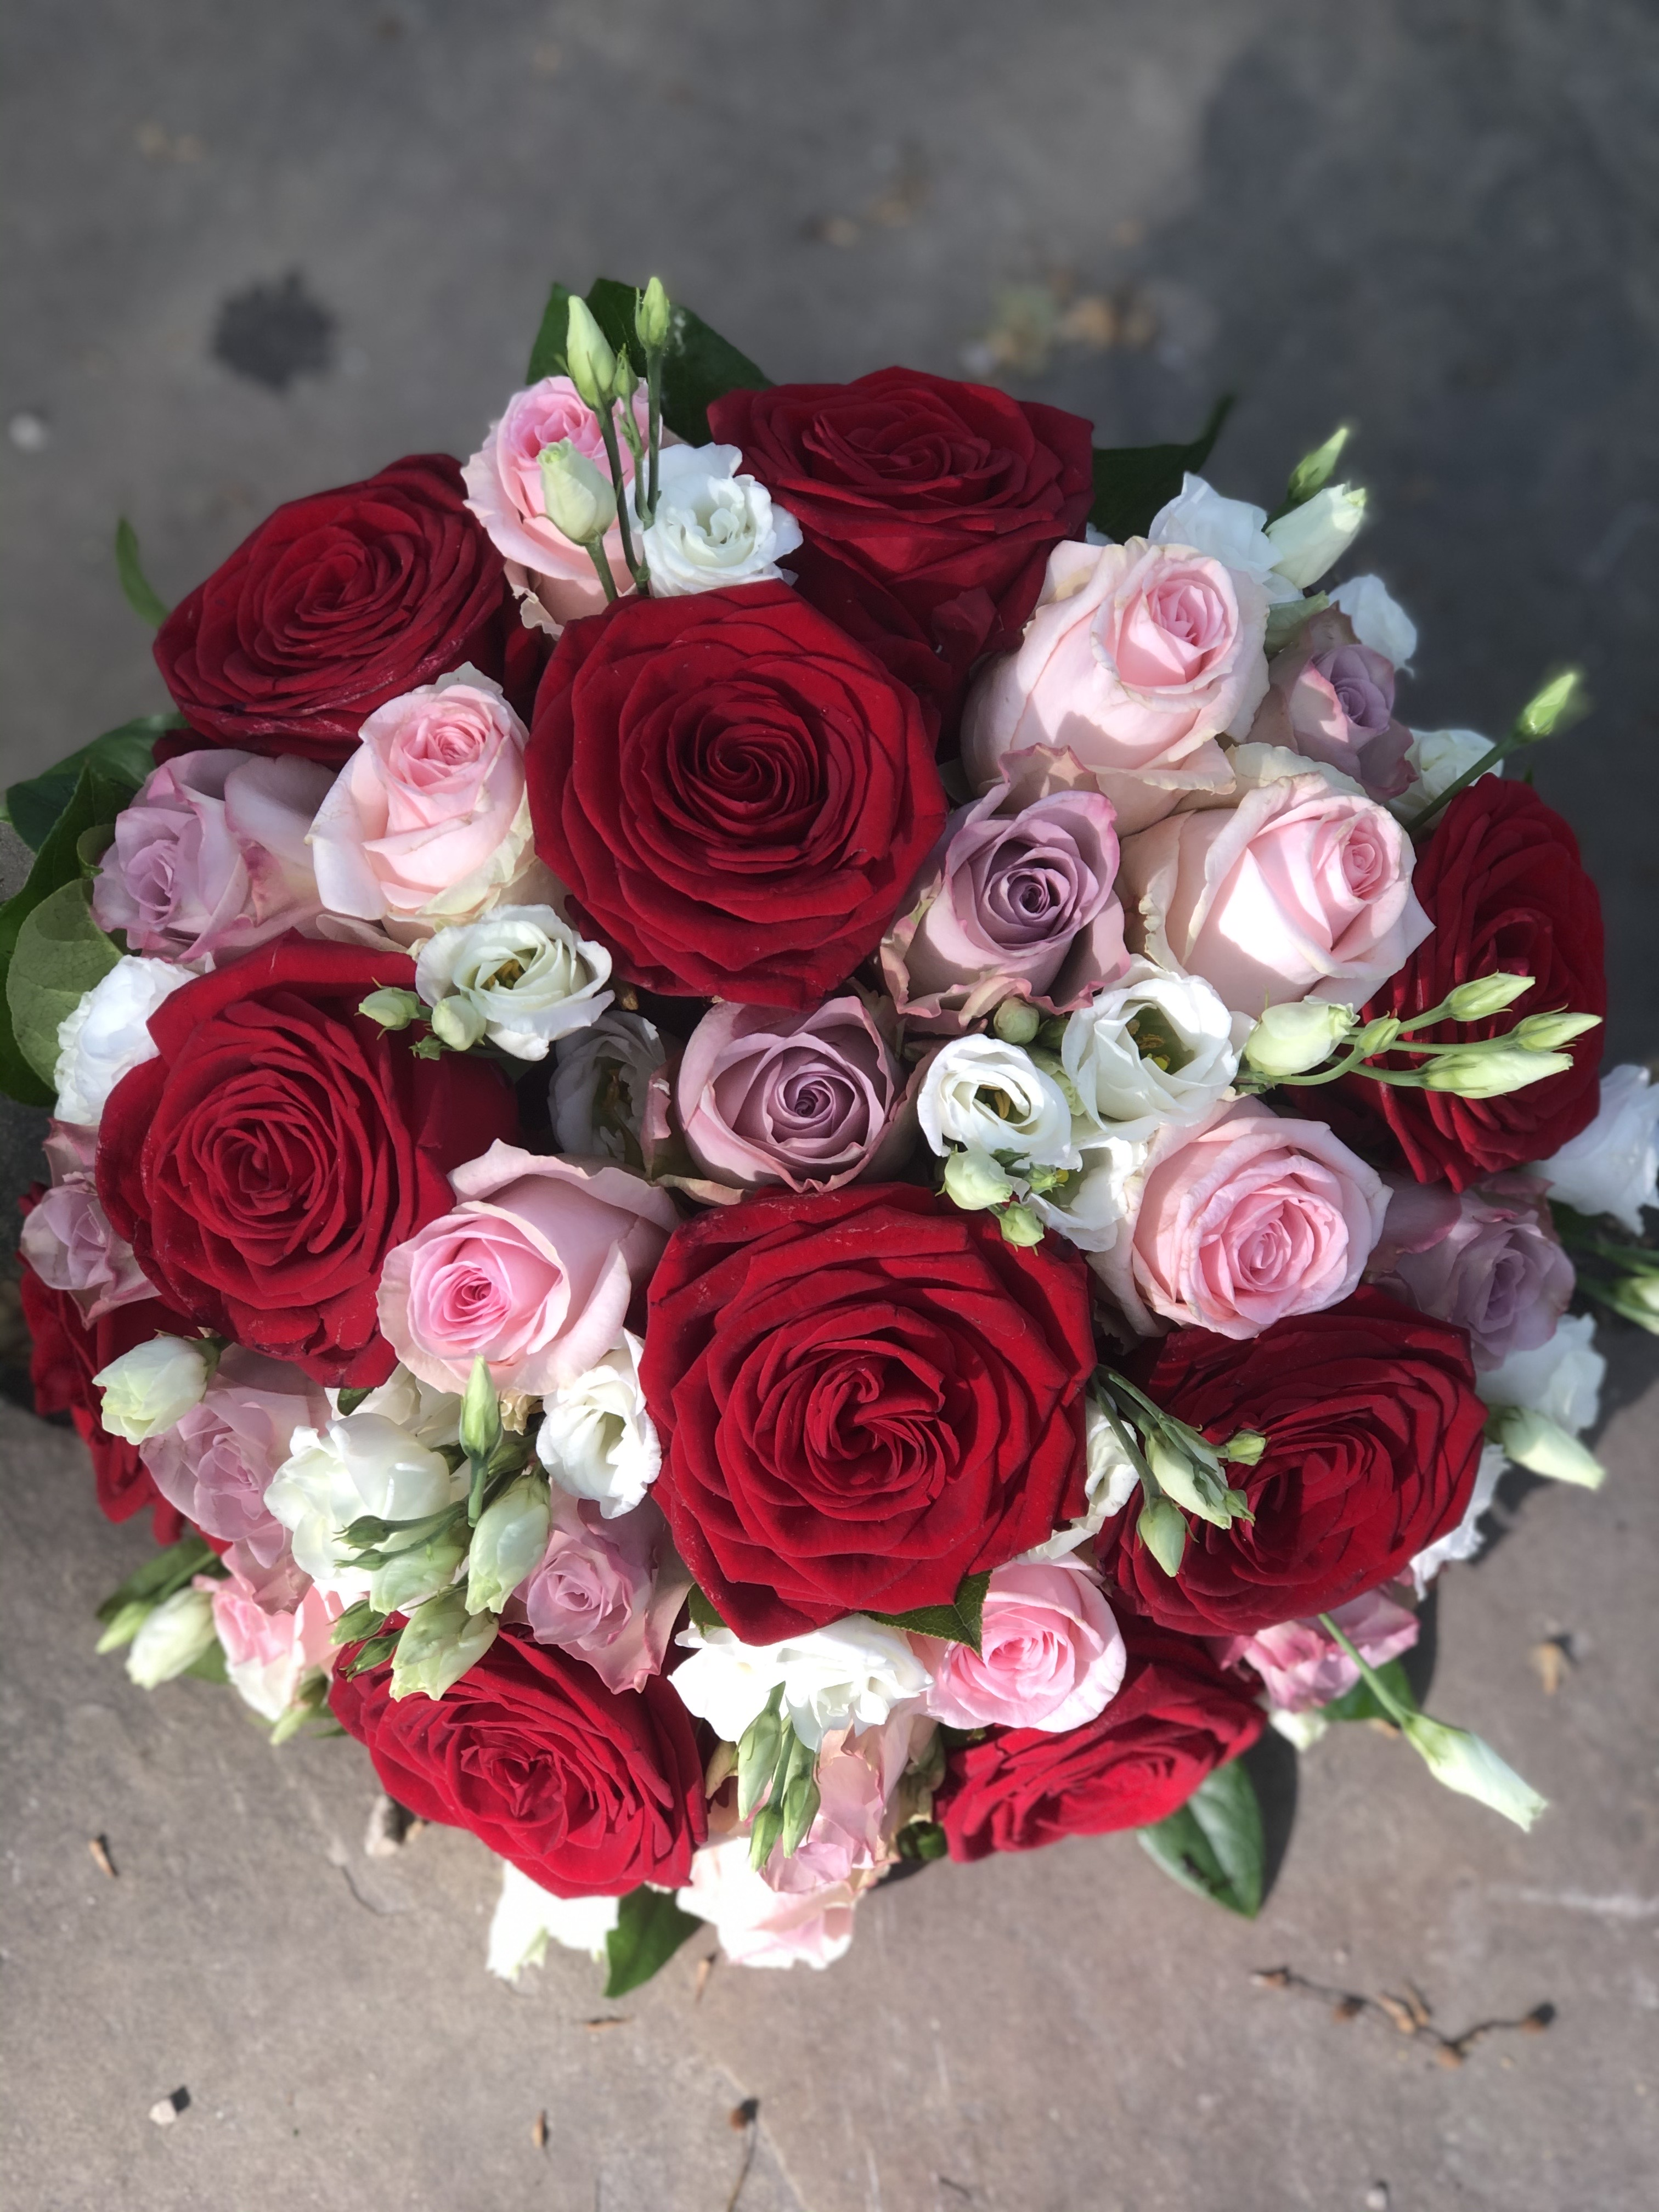 Oh My Roses